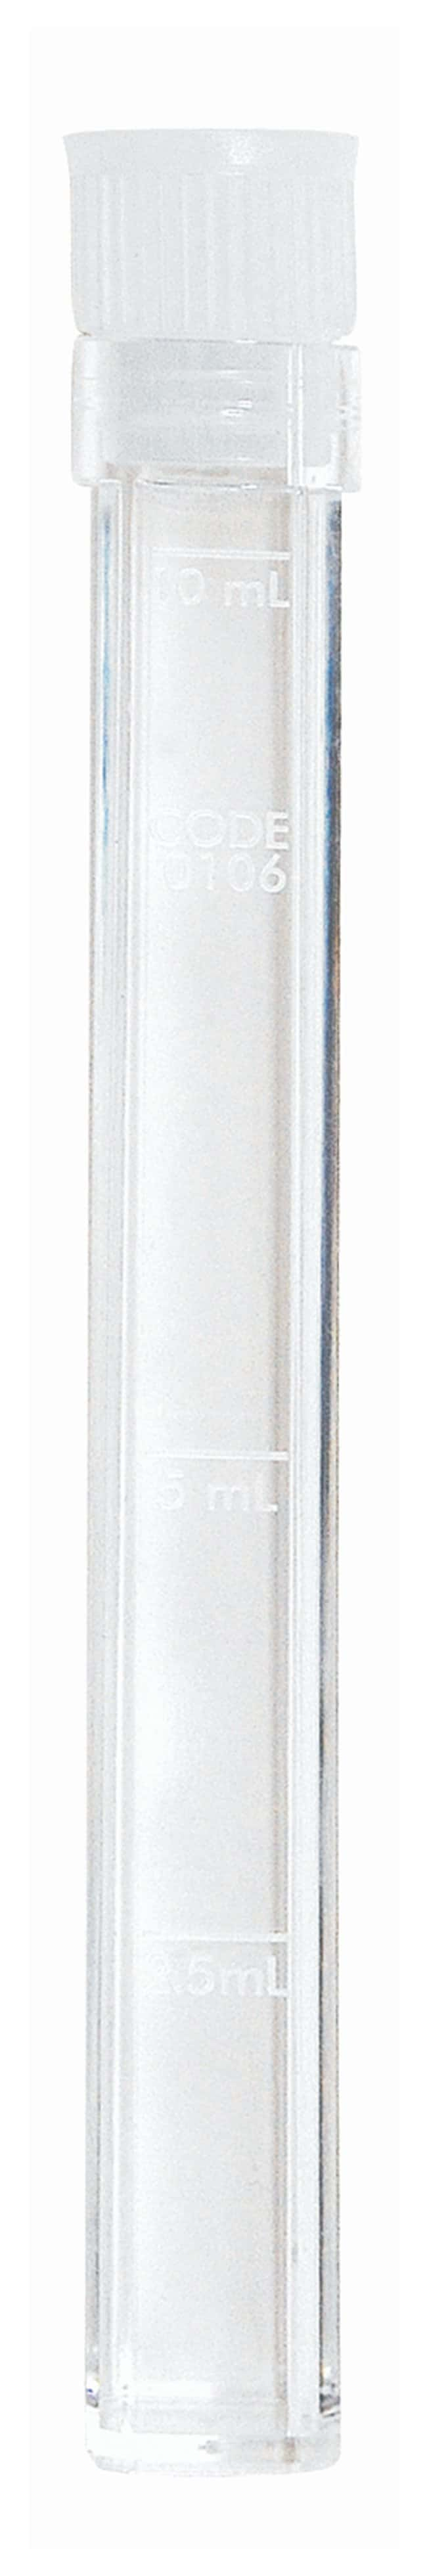 LaMotte 10mL Square Test Tube 10mL; With cap:Beakers, Bottles, Cylinders